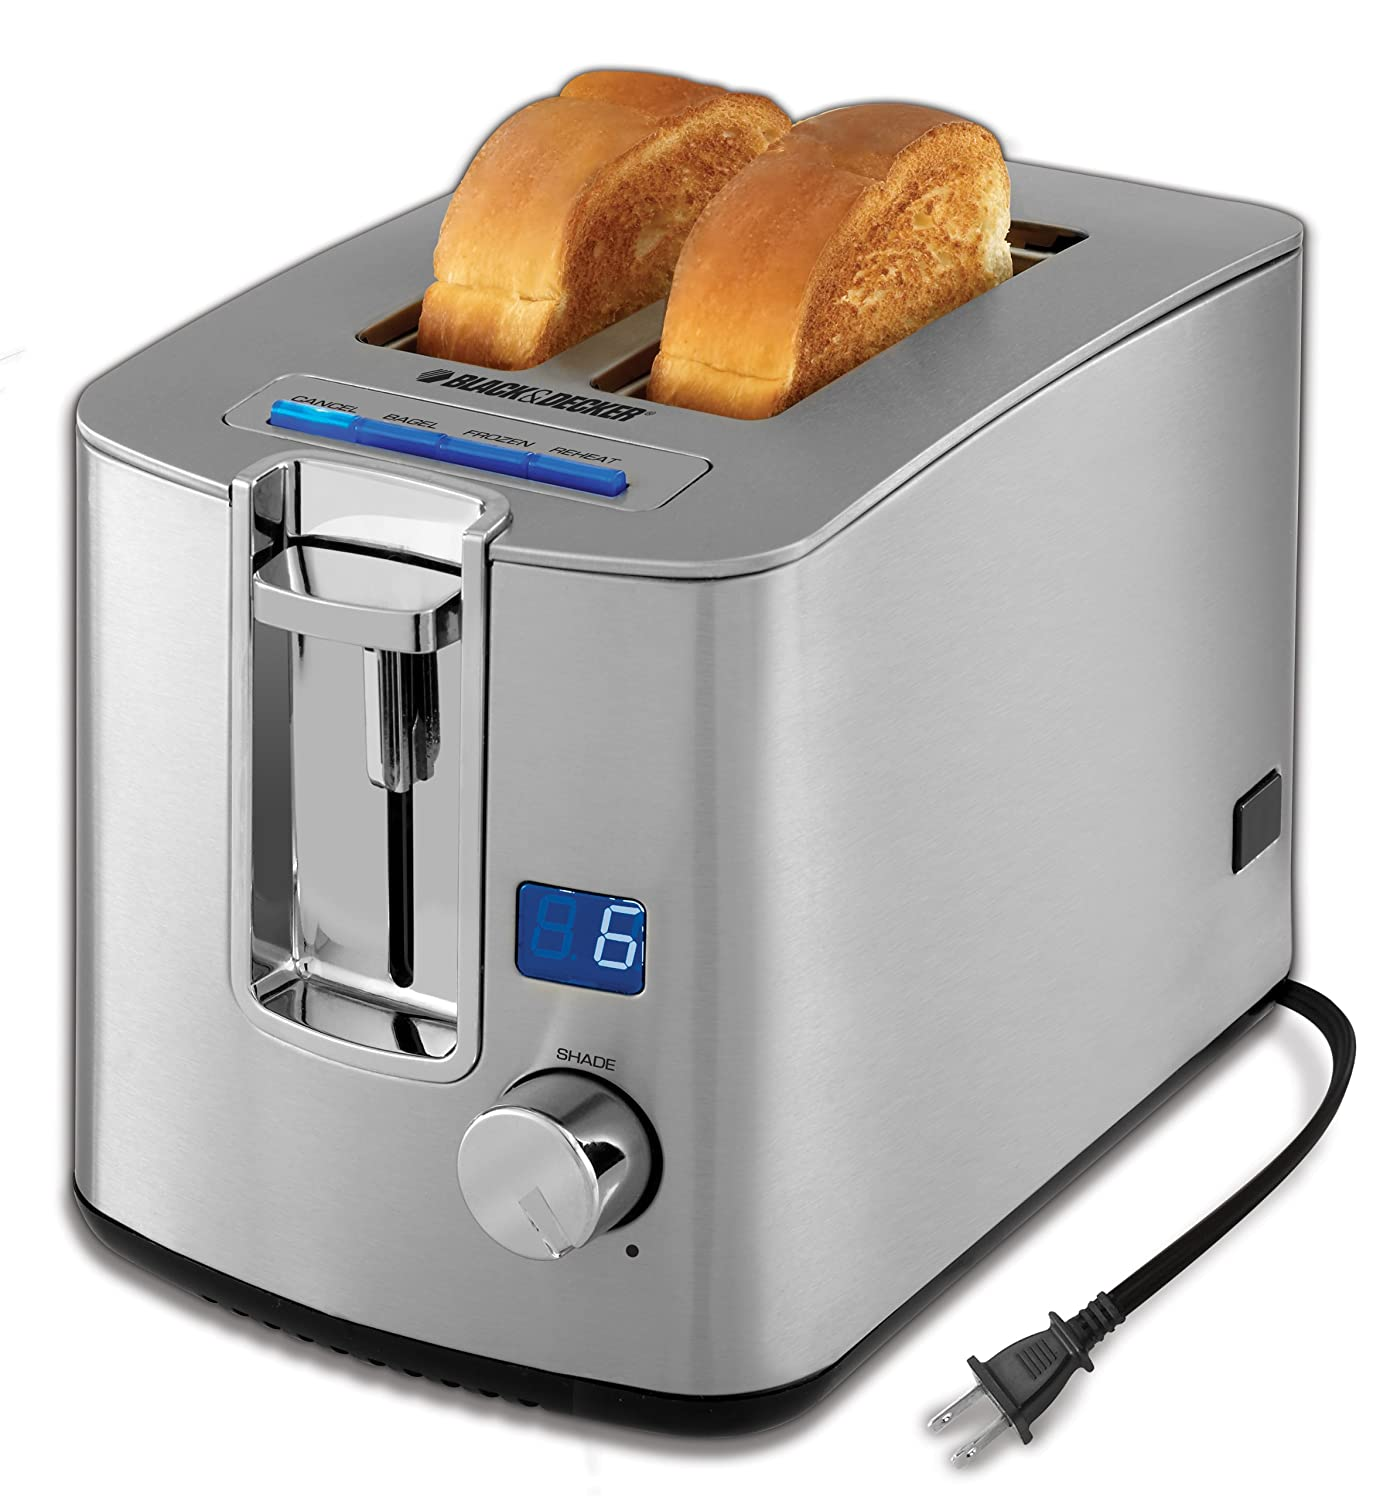 volume high bagels opening bagel for with holman conveyor star toaster